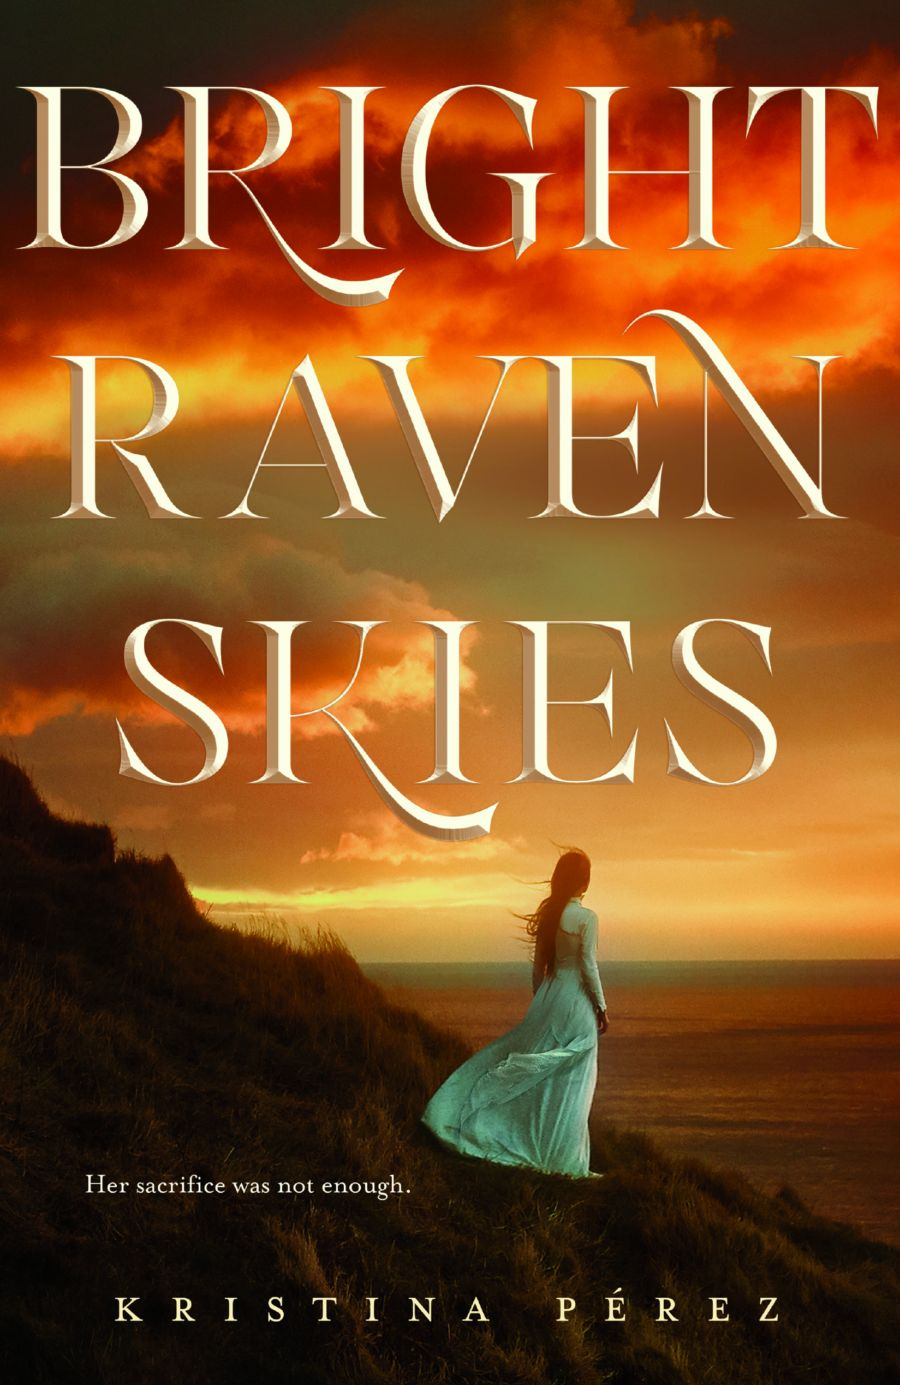 Bright Raven Skies' cover reveal teases conclusion to Sweet